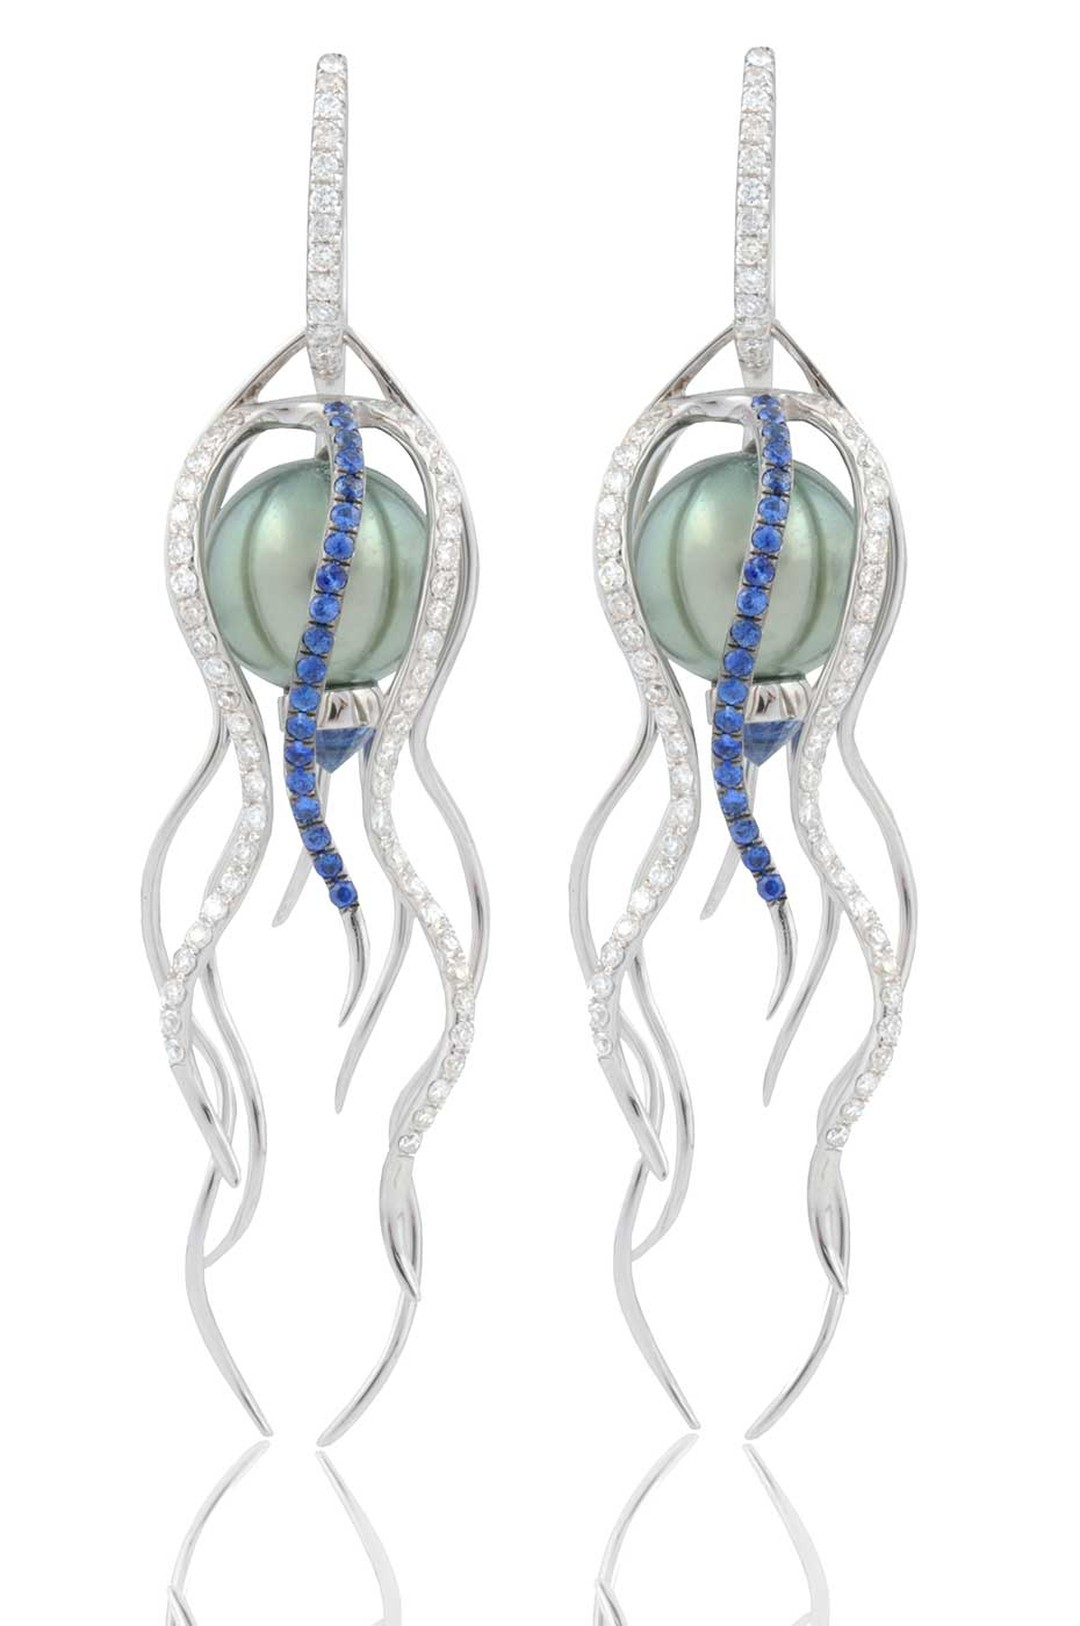 Leyla Abdollahi Doris earrings with Tahitian pearls, diamonds and sapphires.